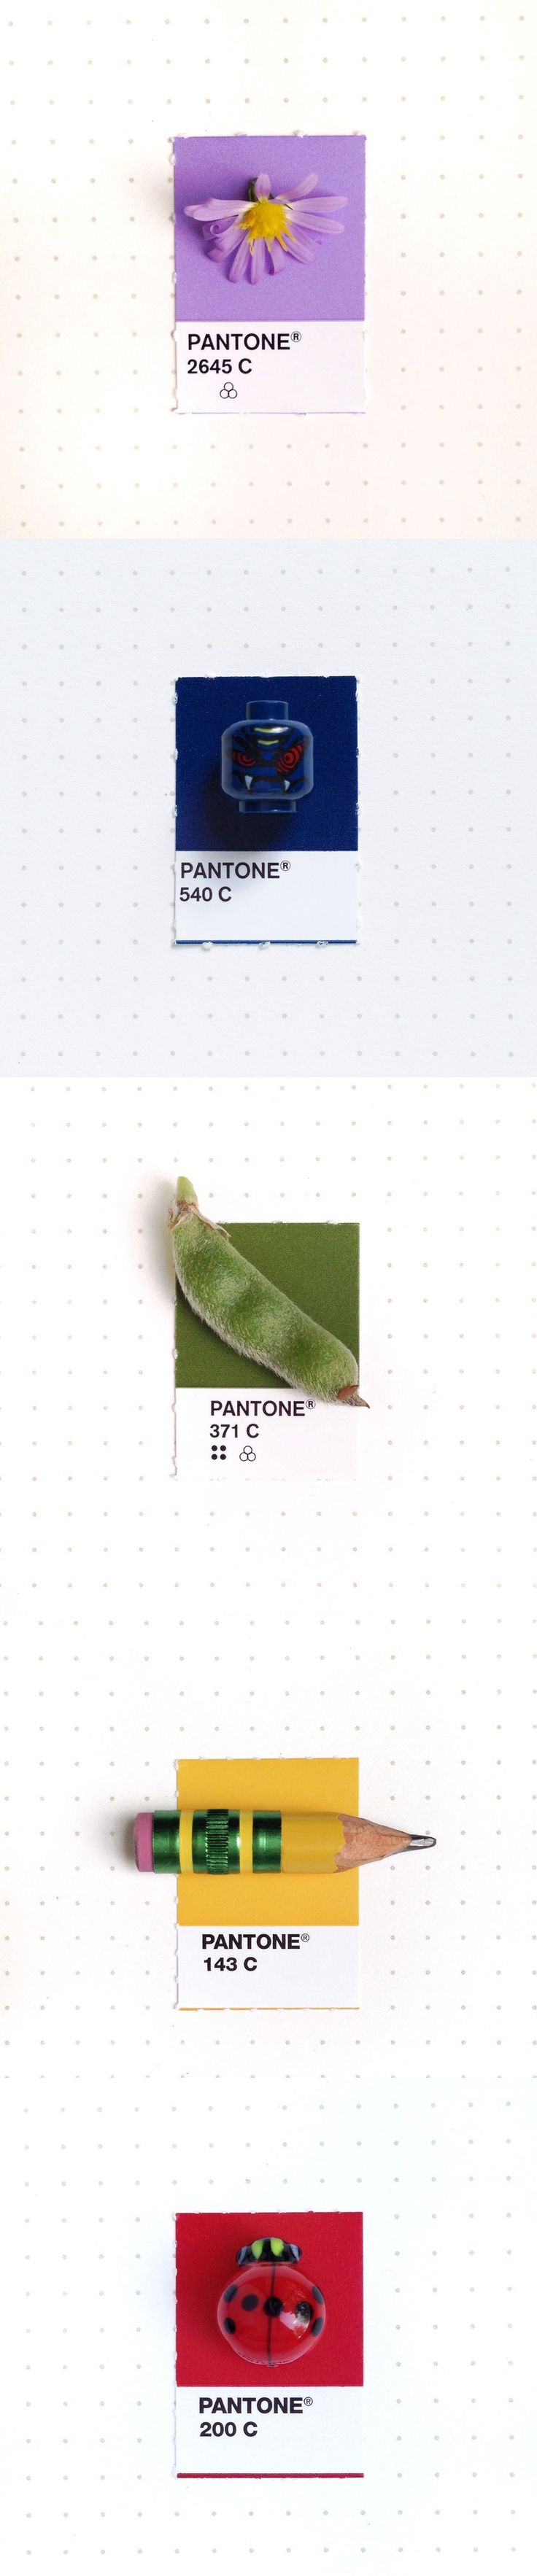 "Designer Inka Mathew color codes the trinkets in her life according to her Pantone Matching System swatch book for a personal project she calls ""Tiny PMS Match""."